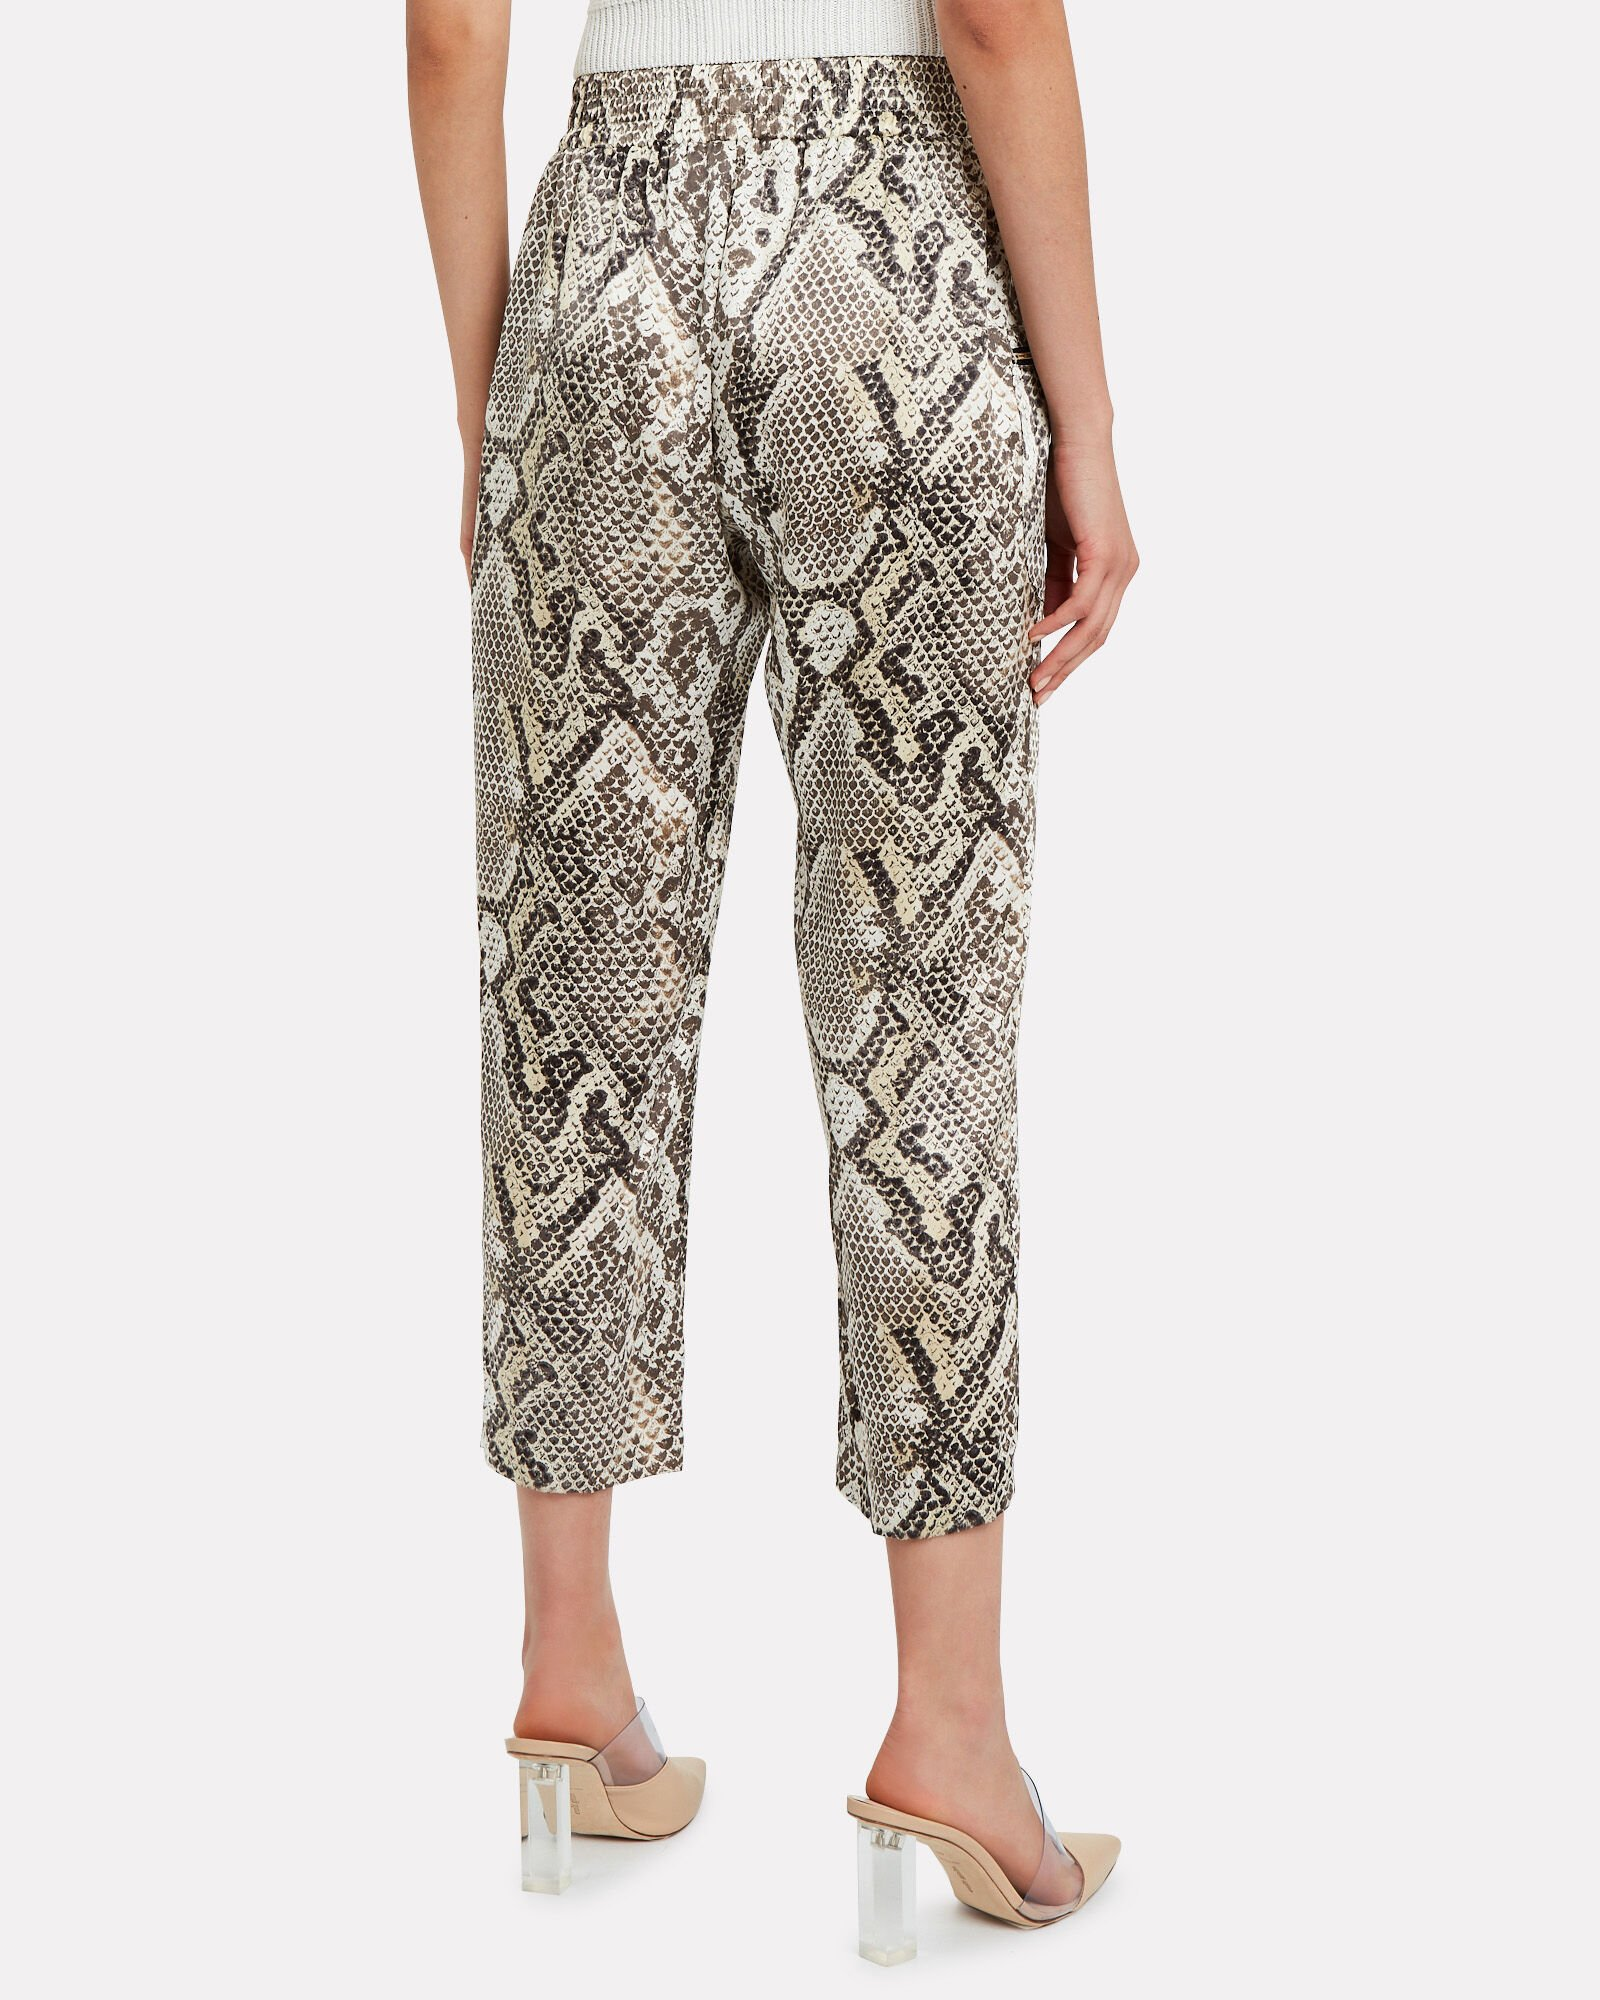 Leigh Tapered Silk Python Pants, MULTI, hi-res